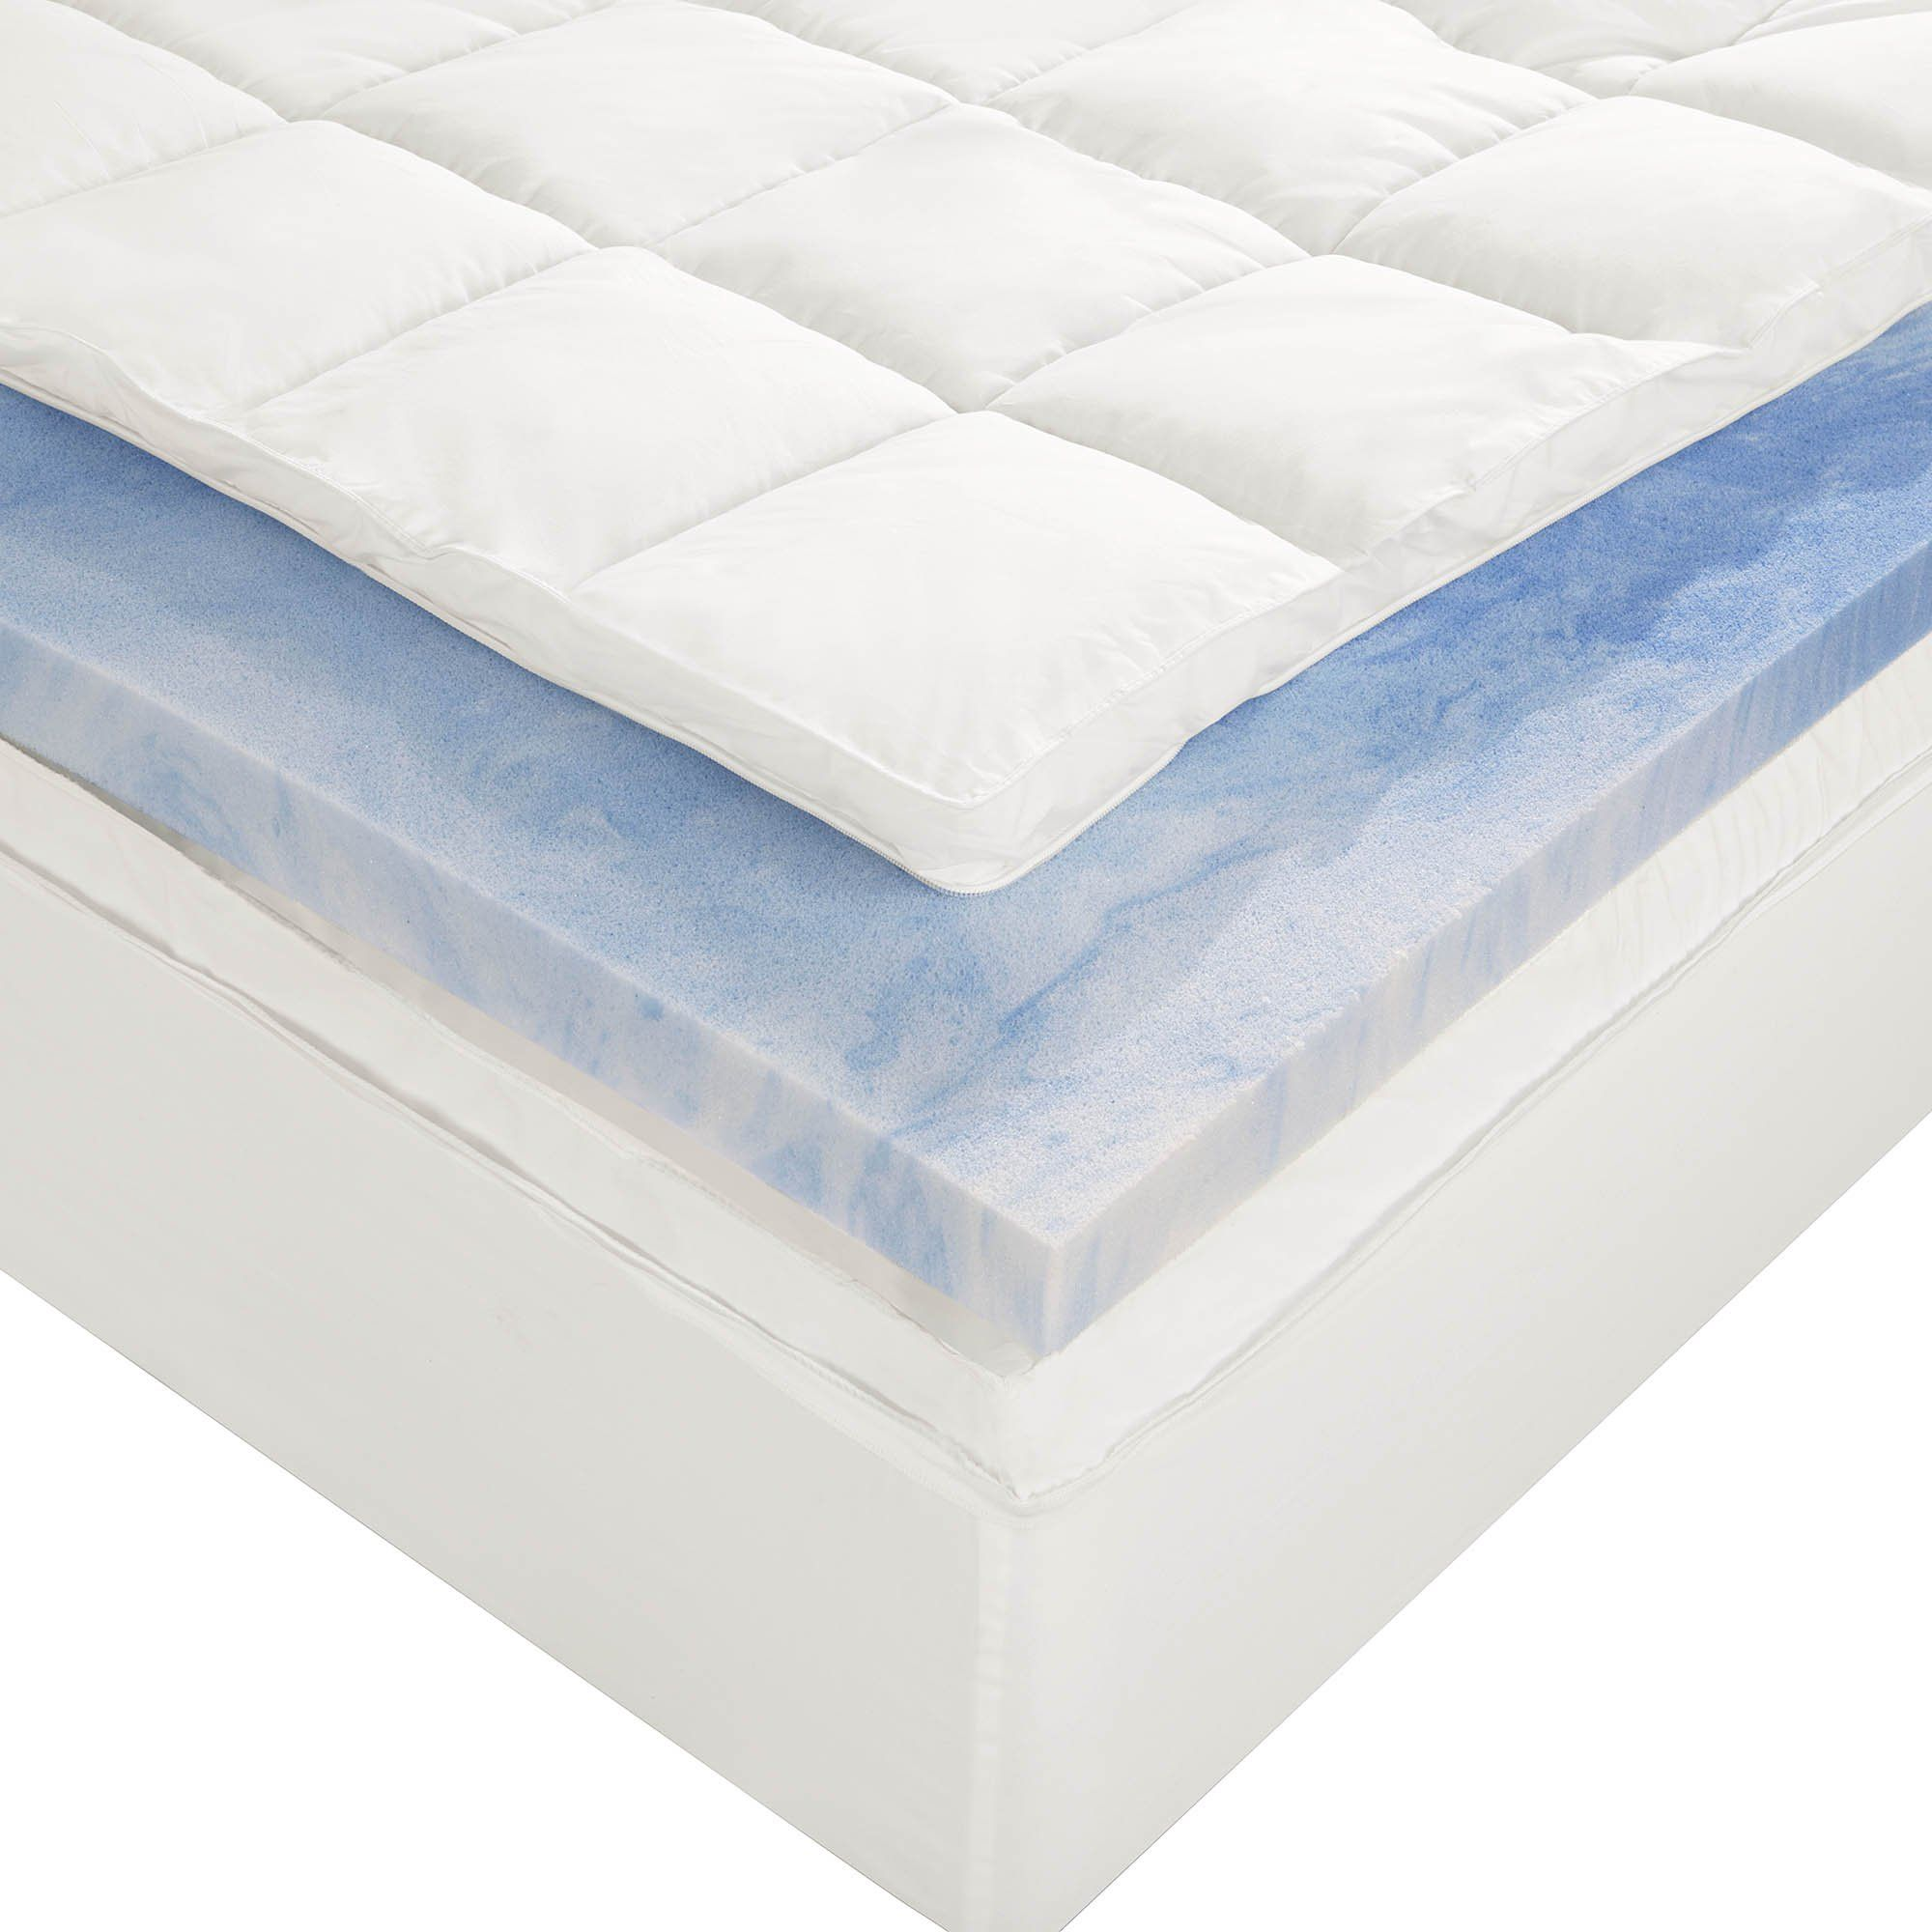 Amazon Com Sleep Innovations 4 Inch Dual Layer Mattress Topper